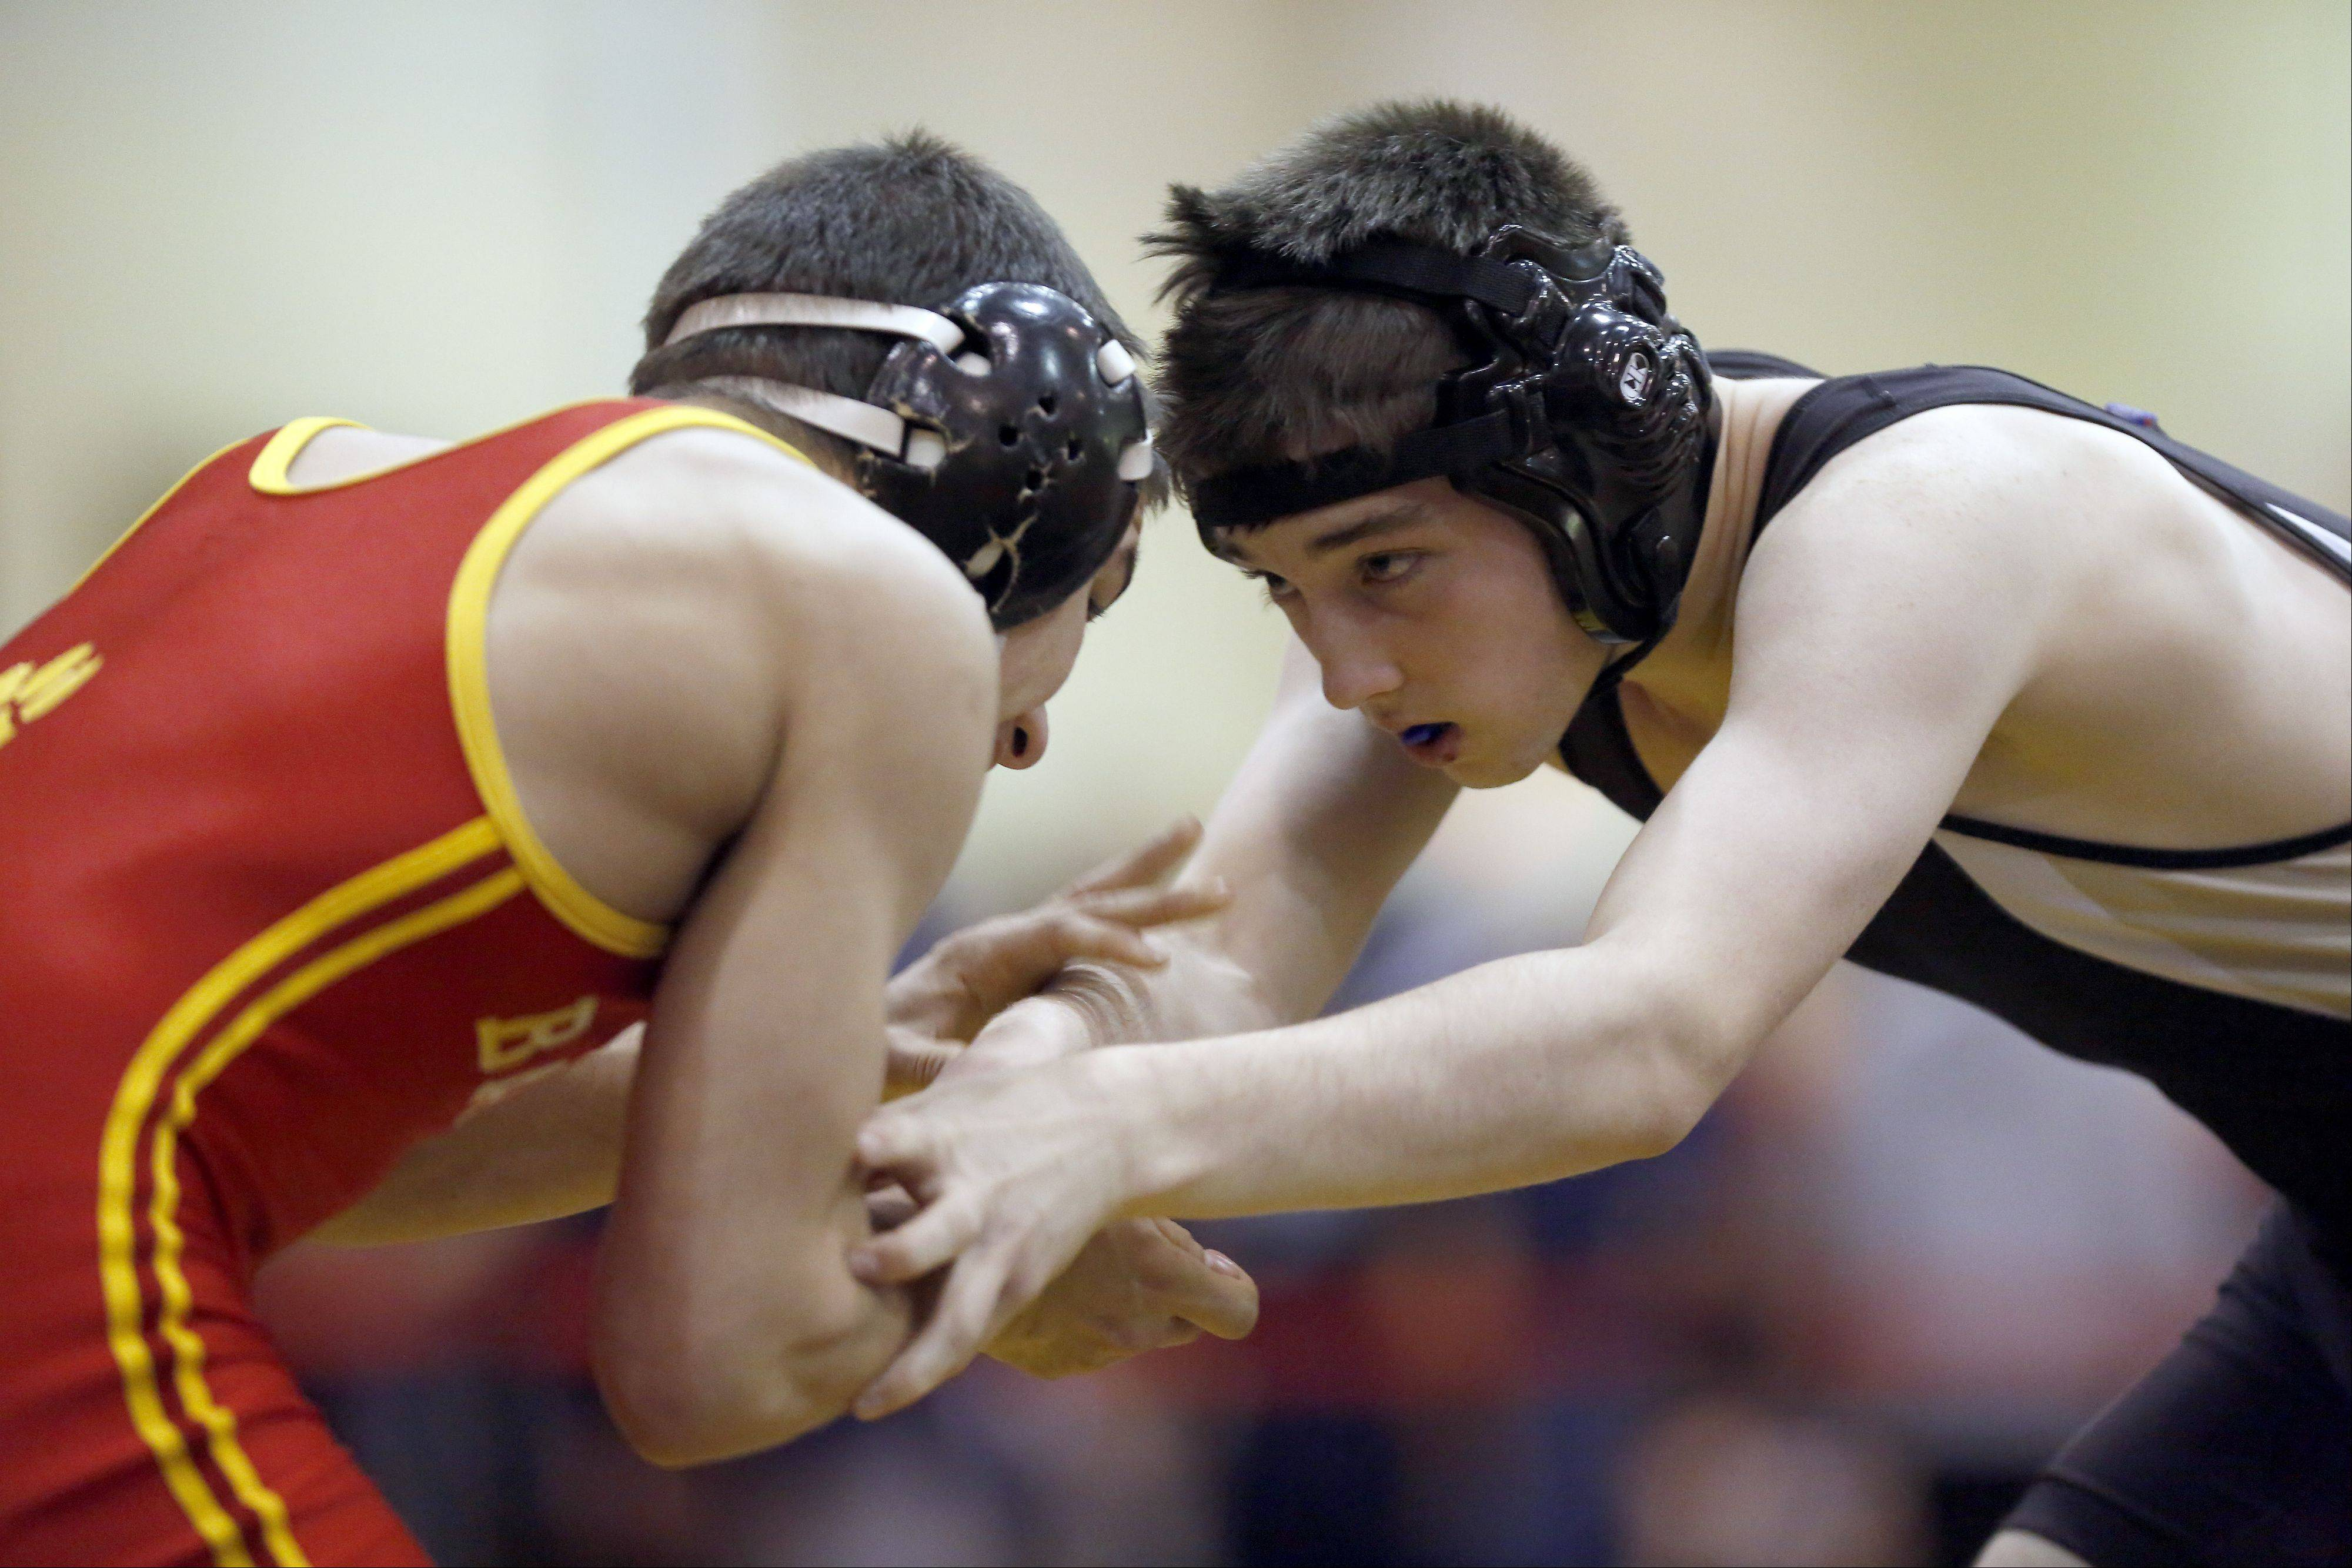 Batavia's Trevor Kilgalien, left, wrestles Streamwood's Ethan Brown in the 145 pound weight class Saturday, January 18, 2014 at the Batavia wrestling invite.